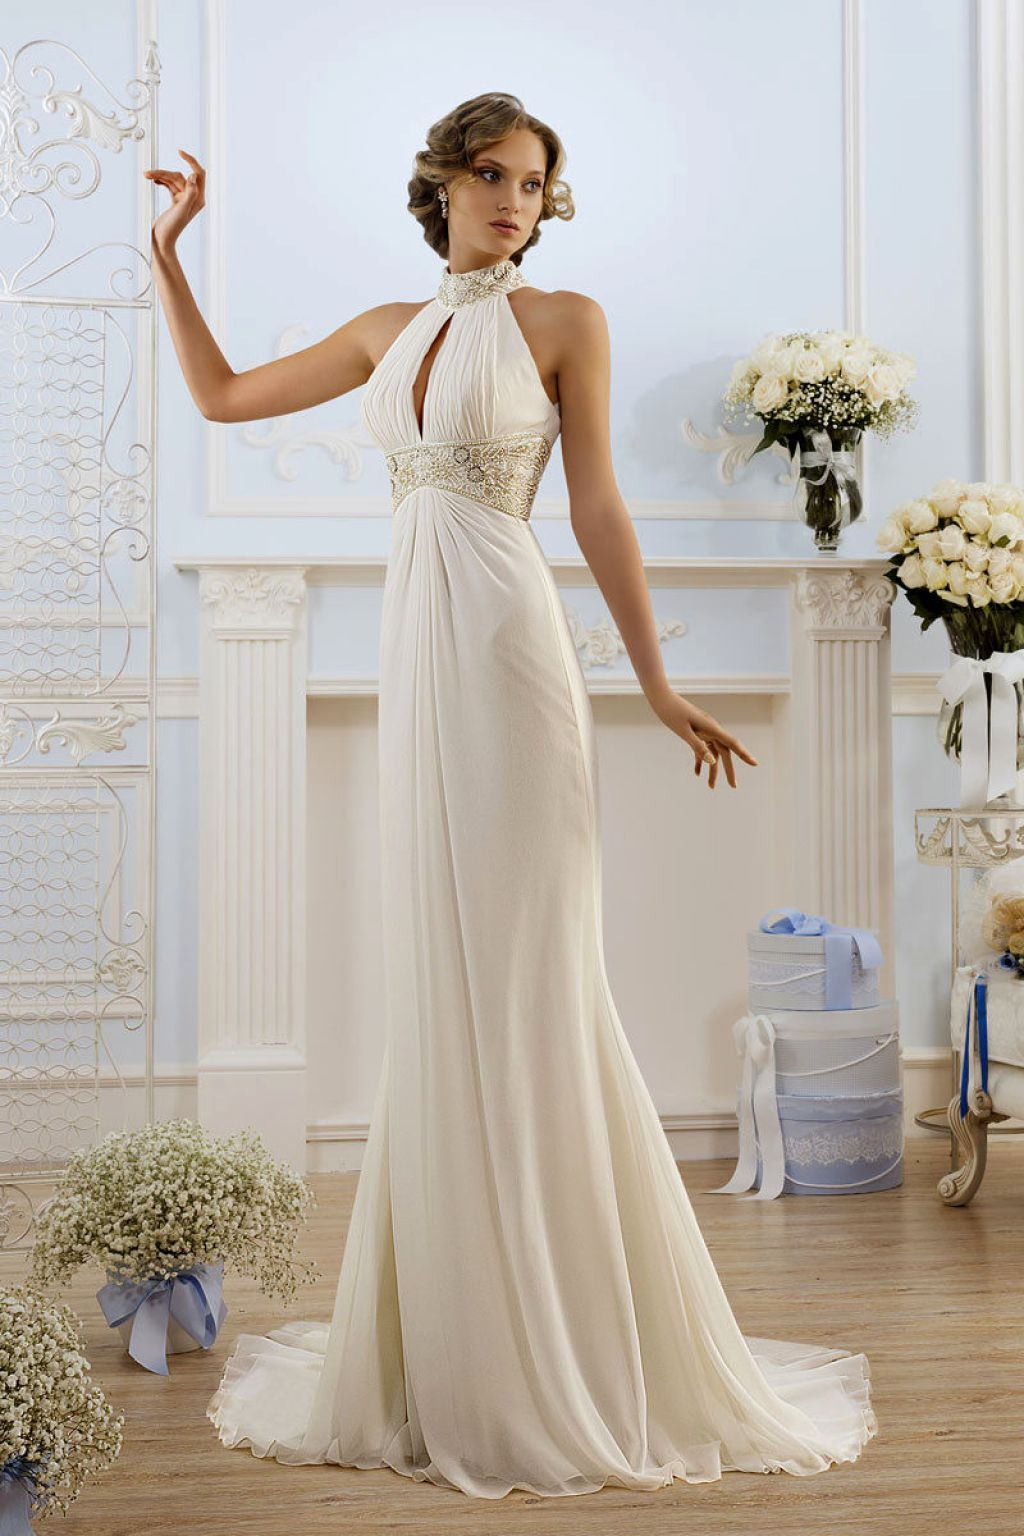 Sheath wedding dress with halter neck